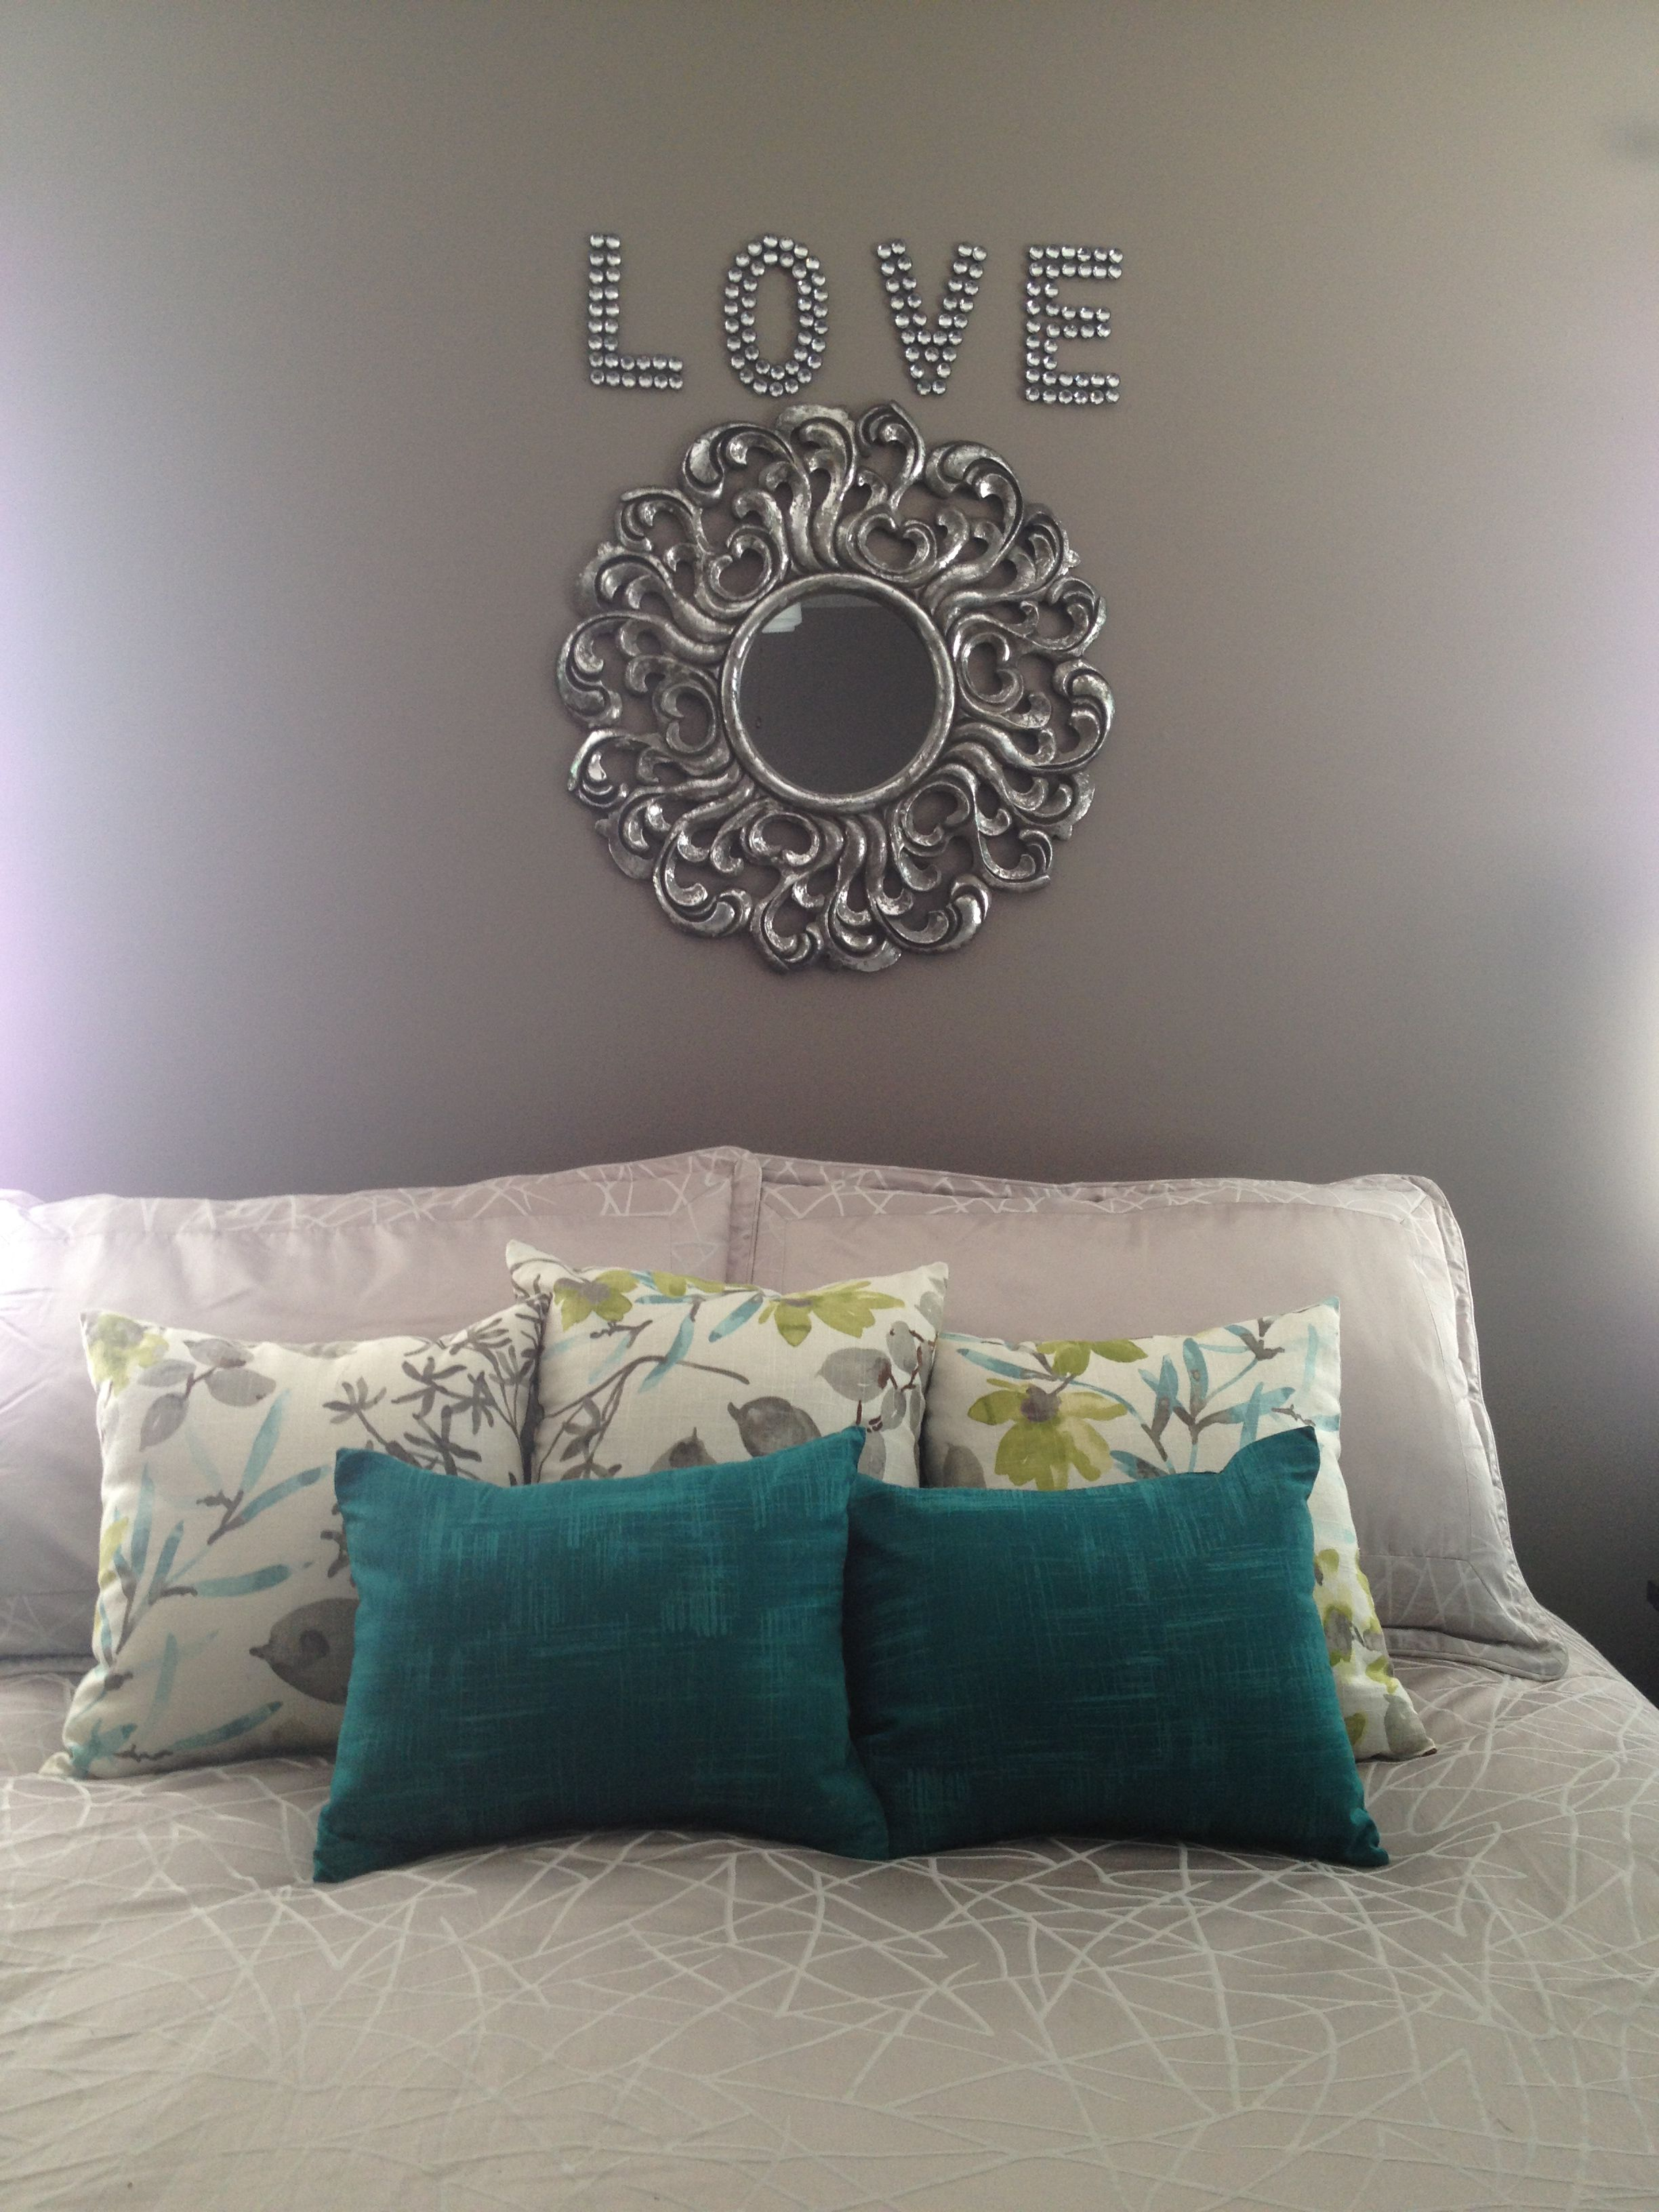 No Cost Decorating Master Bedroom. Love the shutter